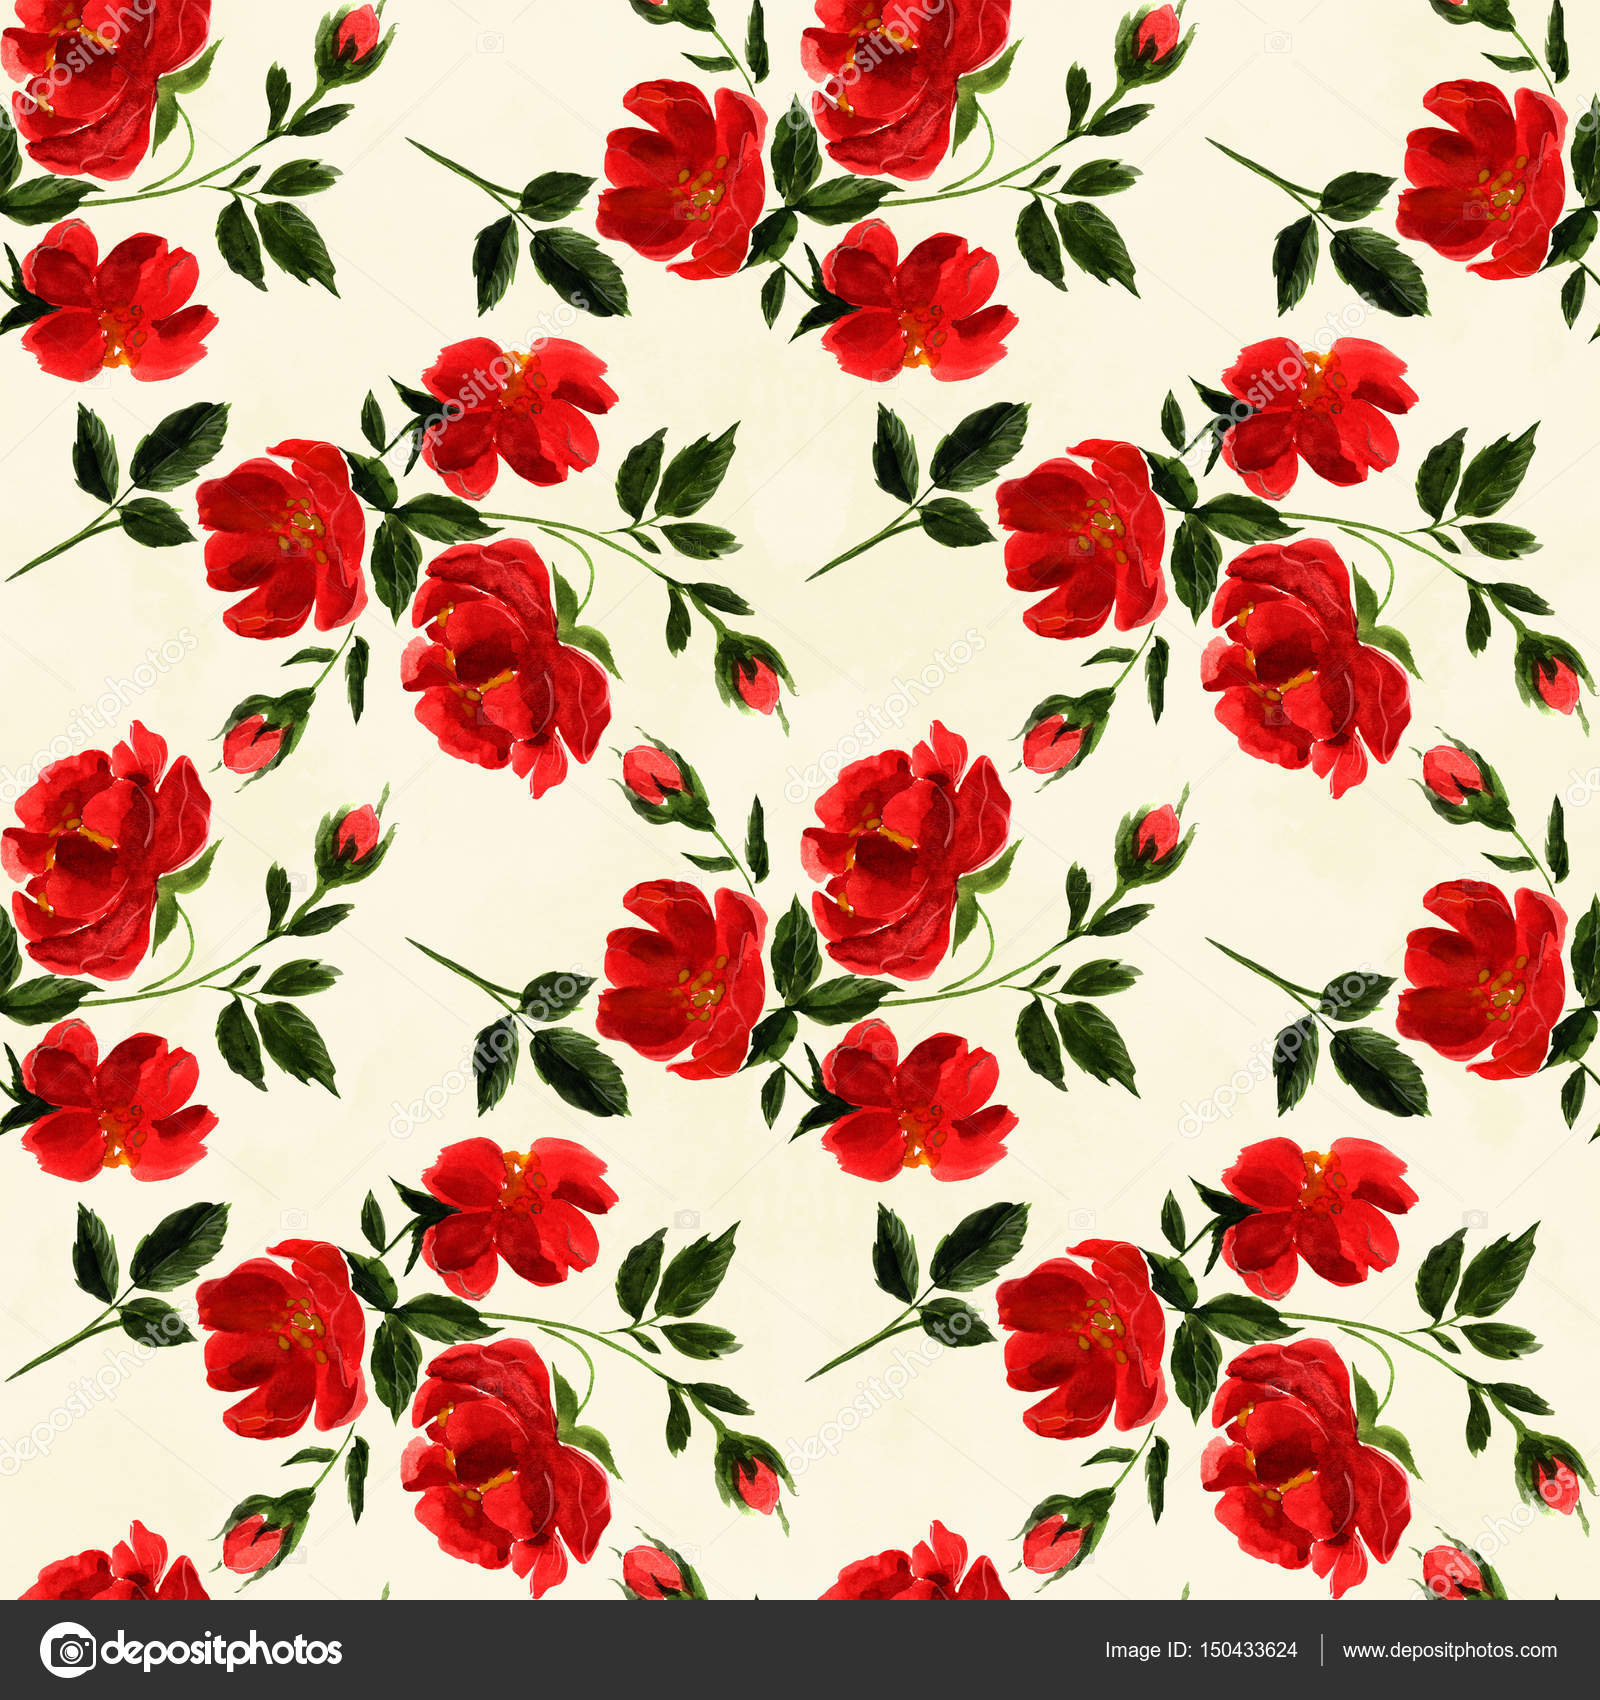 Flowers. Abstract Wallpaper With Floral Motifs. Seamless